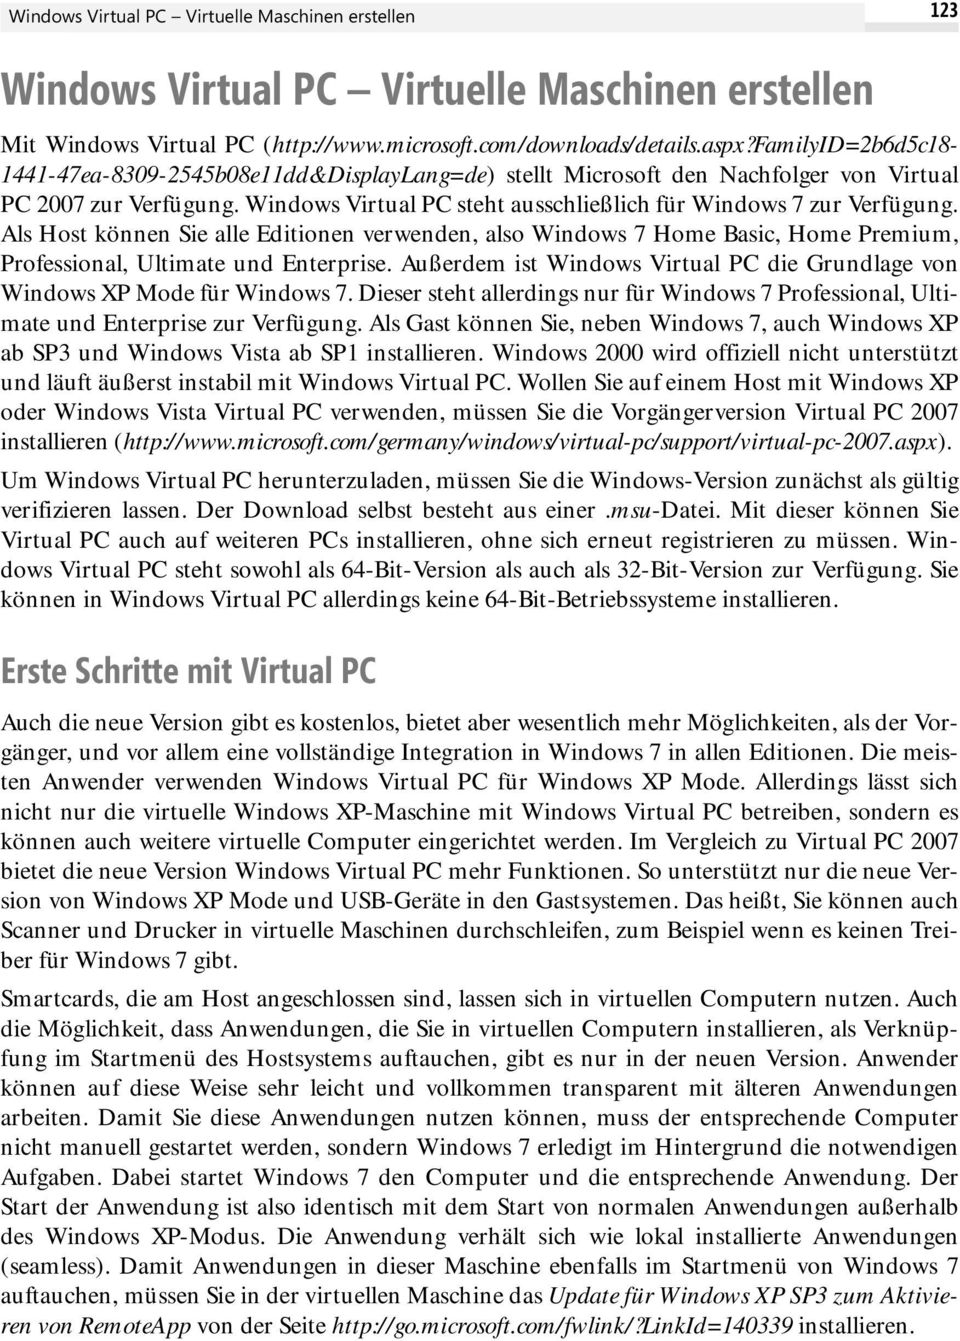 Als Host können Sie alle Editionen verwenden, also Windows 7 Home Basic, Home Premium, Professional, Ultimate und Enterprise.